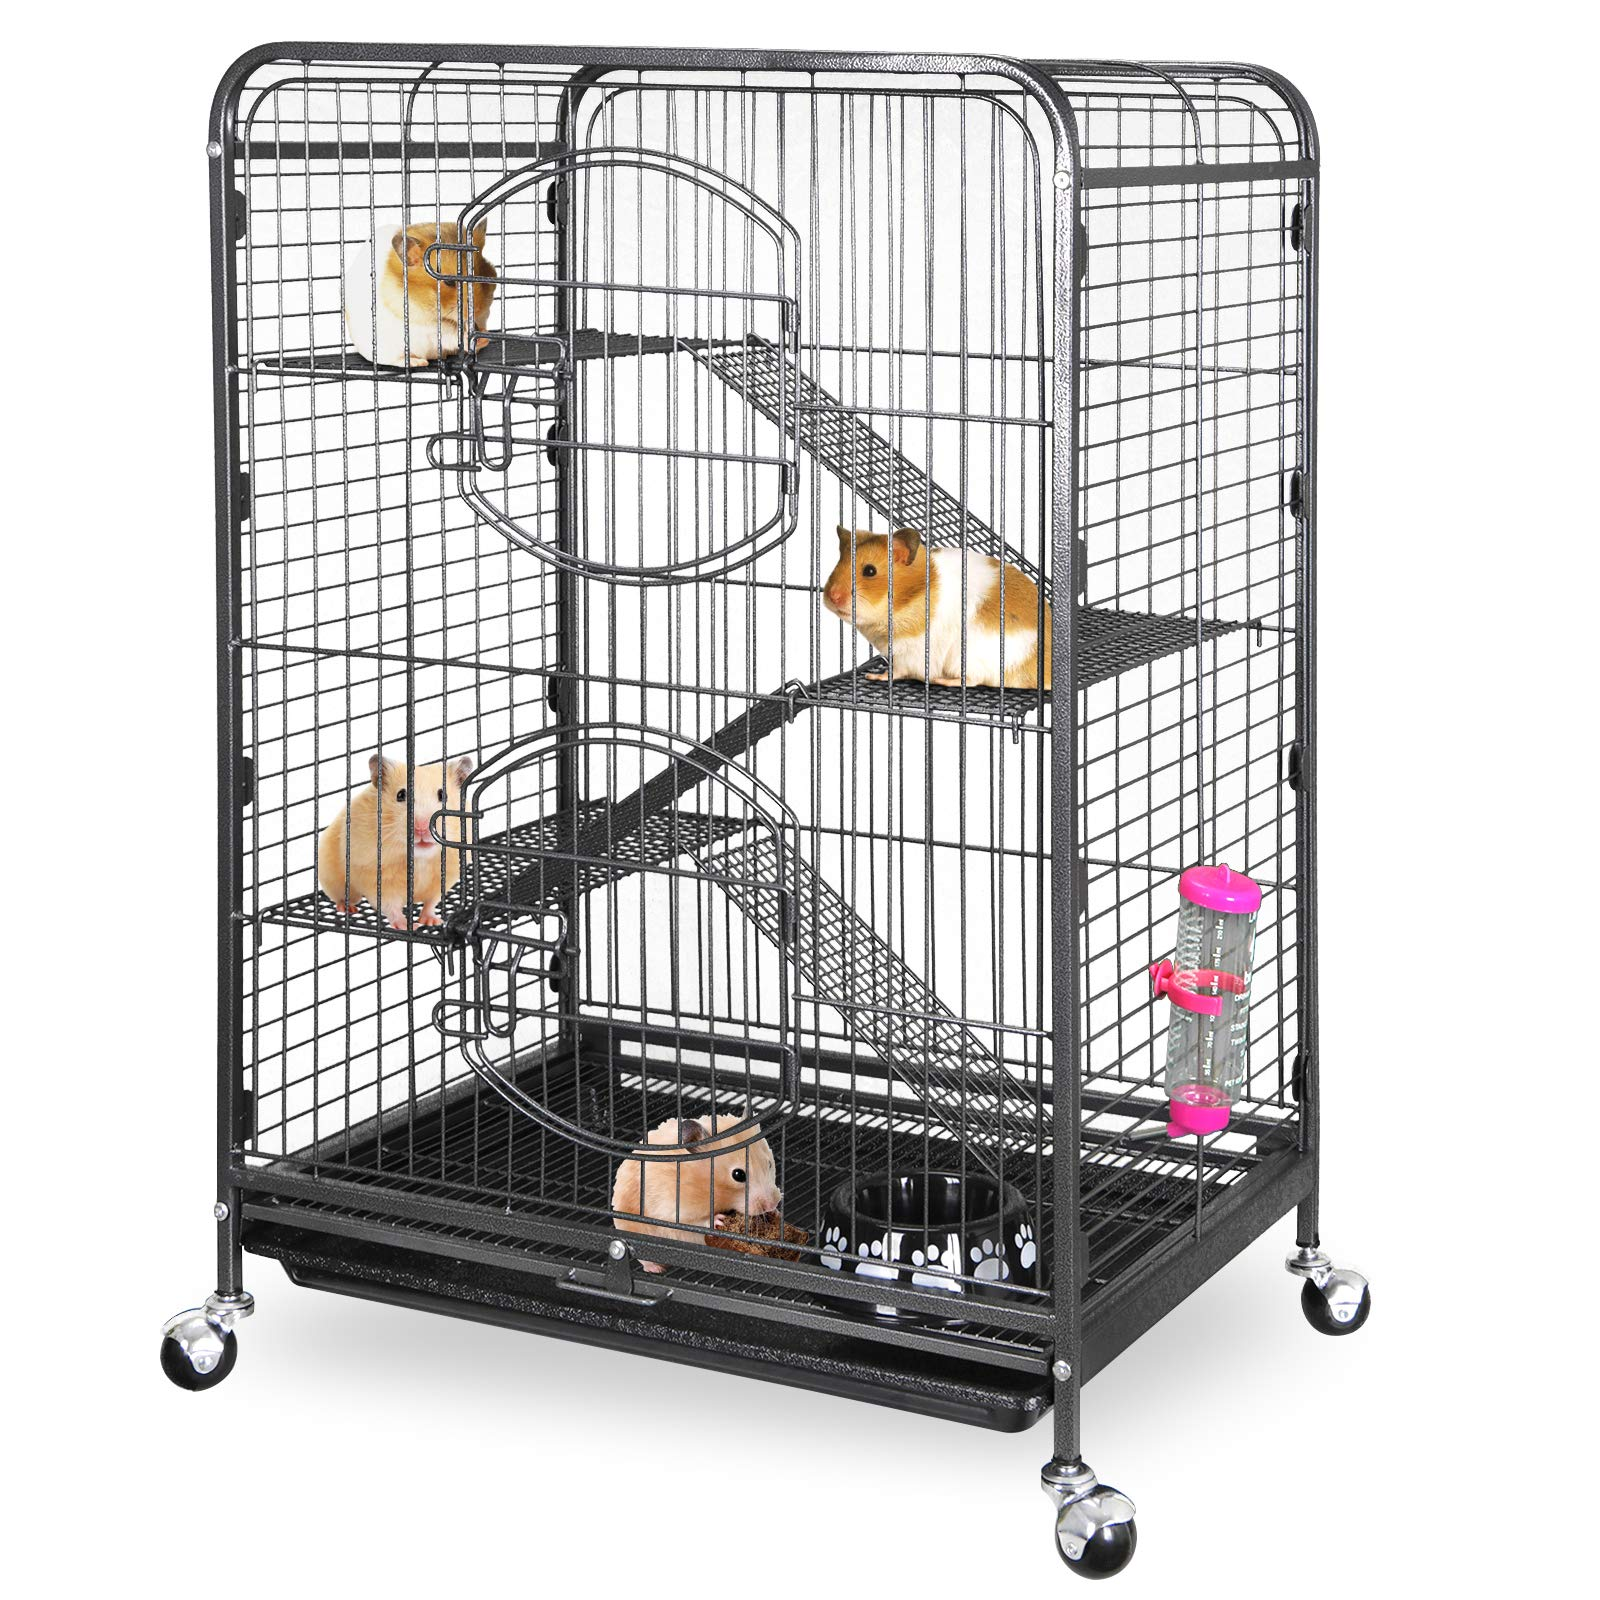 ZENY 37'' Ferret Cage Rabbit Guinea Pig Chinchilla Rat Small Animal House 4 Levels (Black) by ZENY